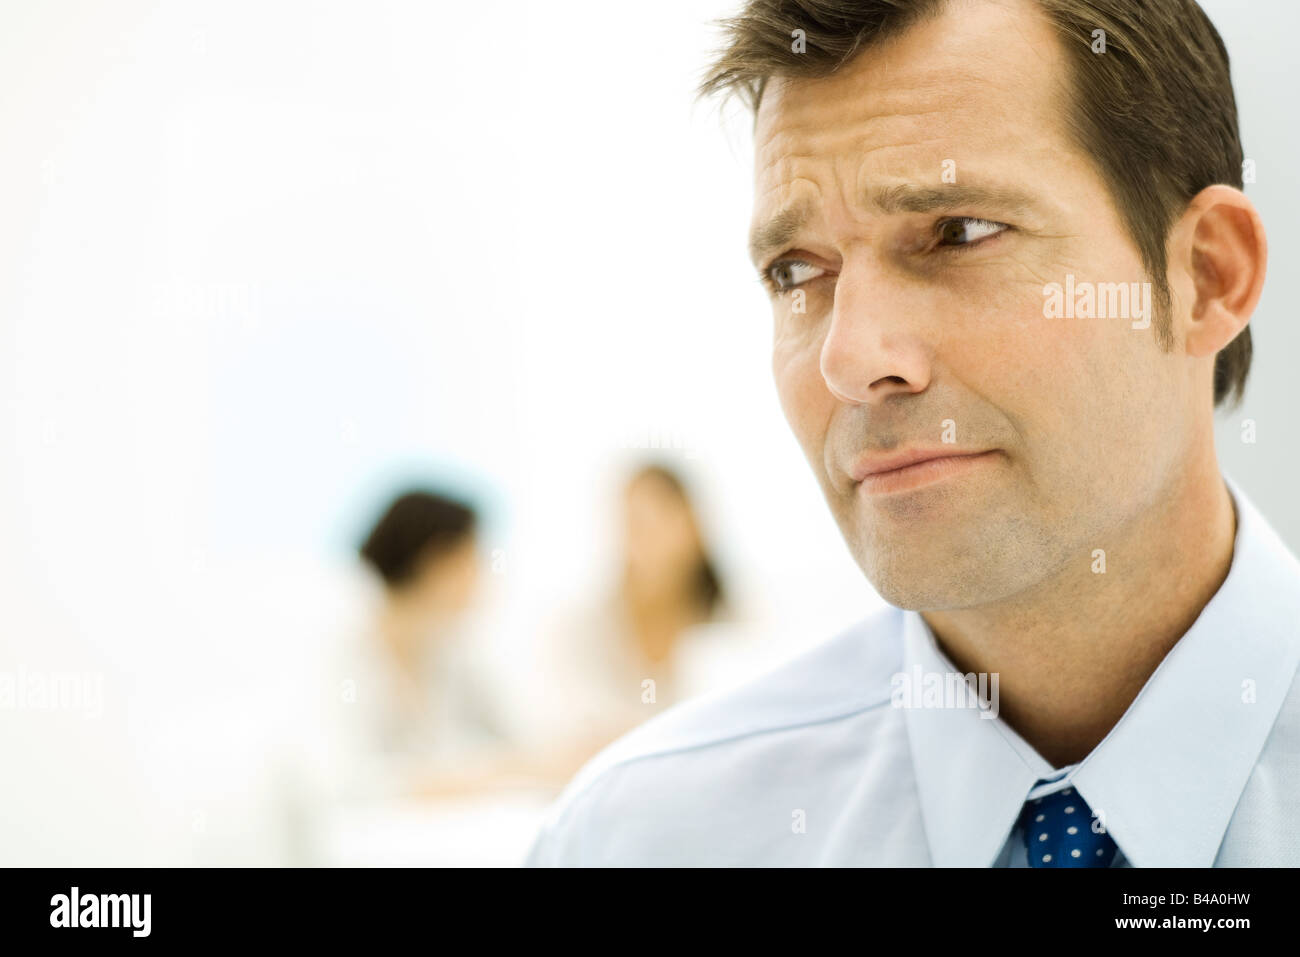 Businessman furrowing brow, looking out of frame, close-up - Stock Image